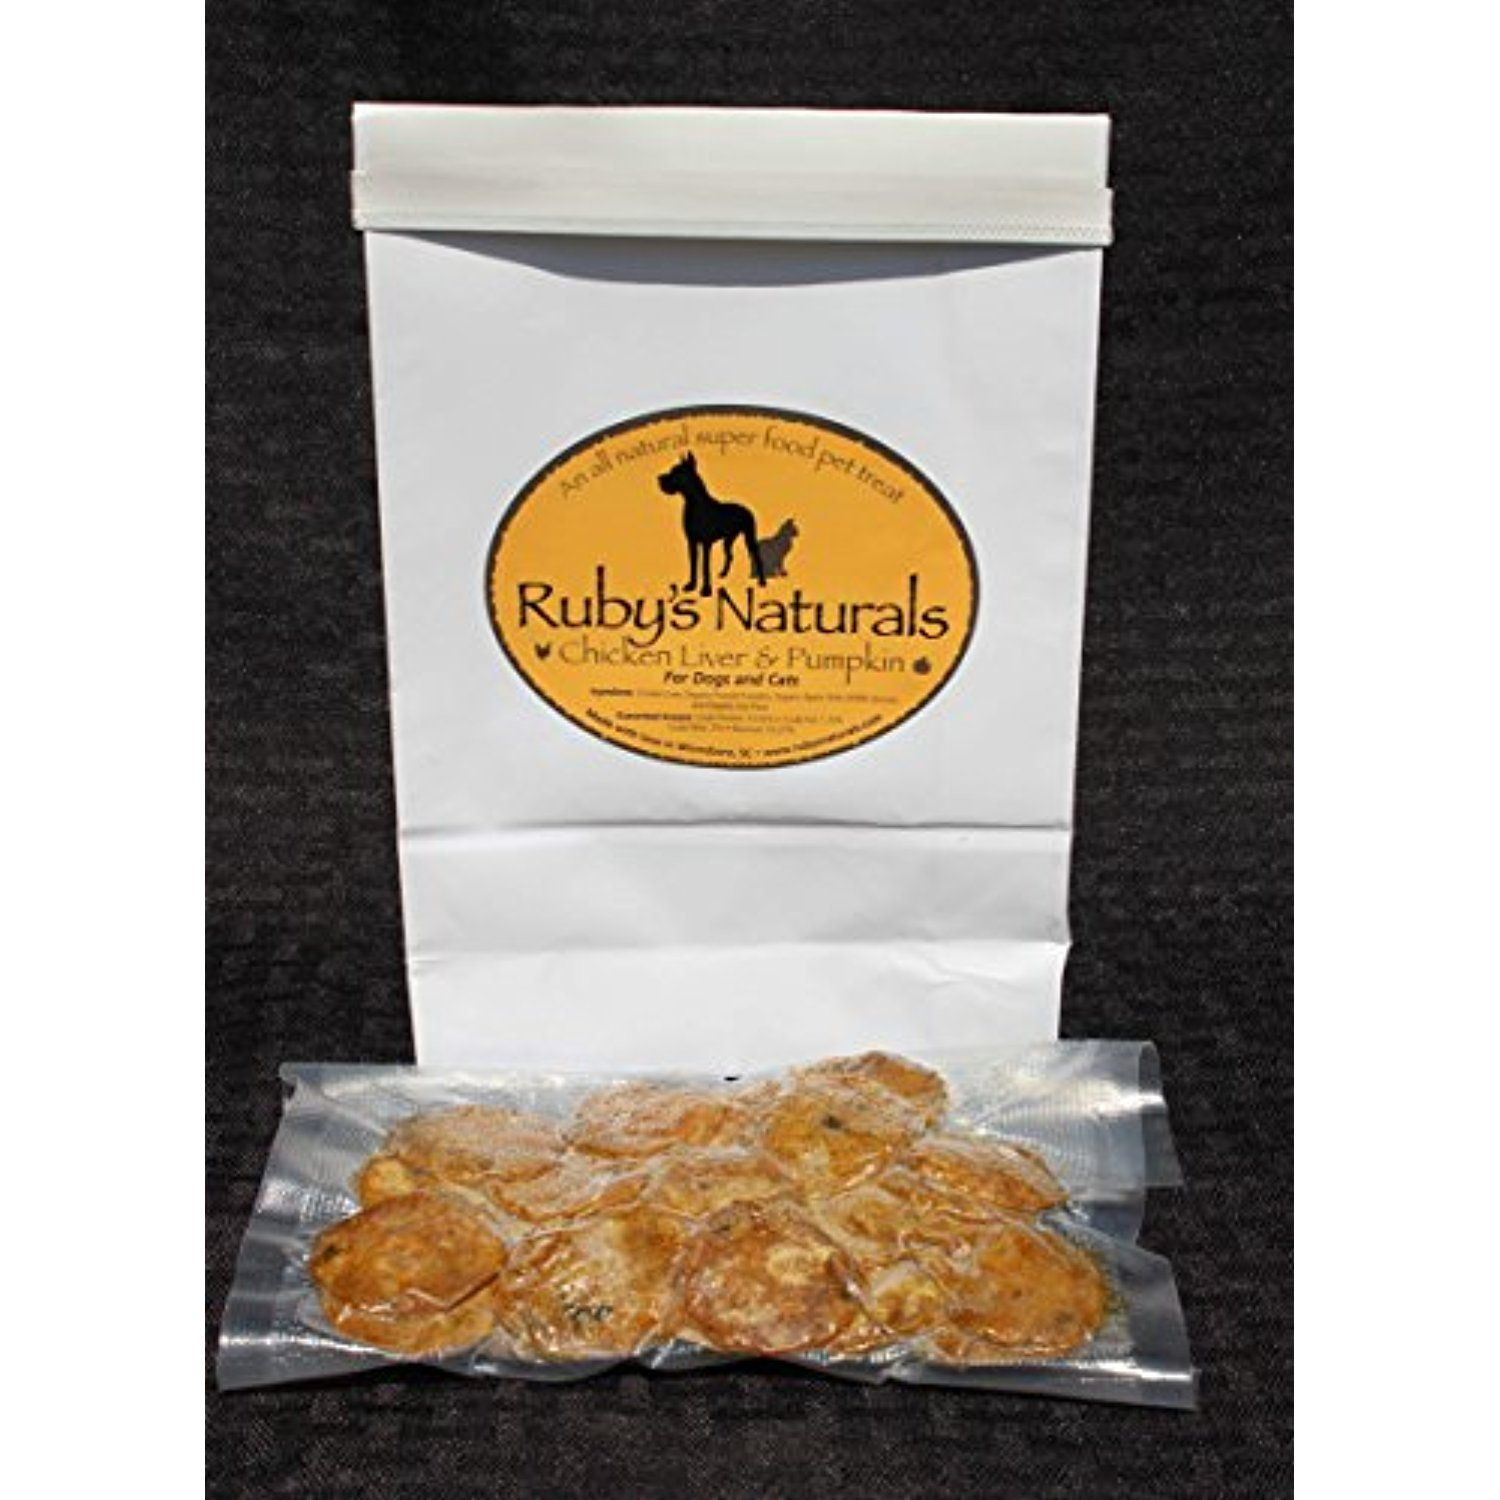 Ruby's Naturals Chicken Liver and Pumpkin 4 oz. You